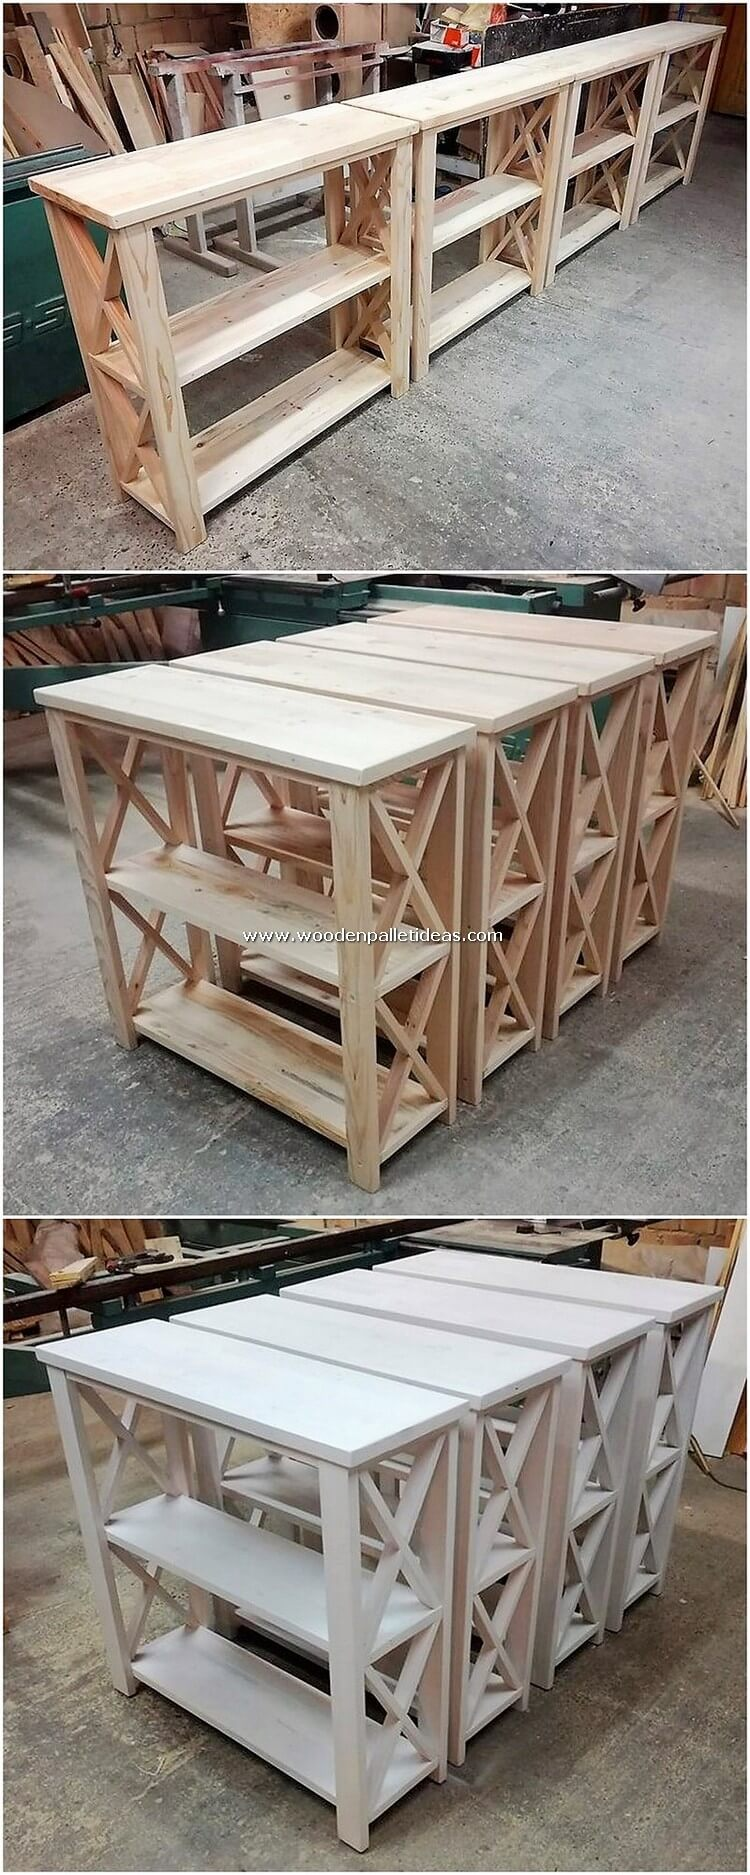 Pallet-Shelving-Tables